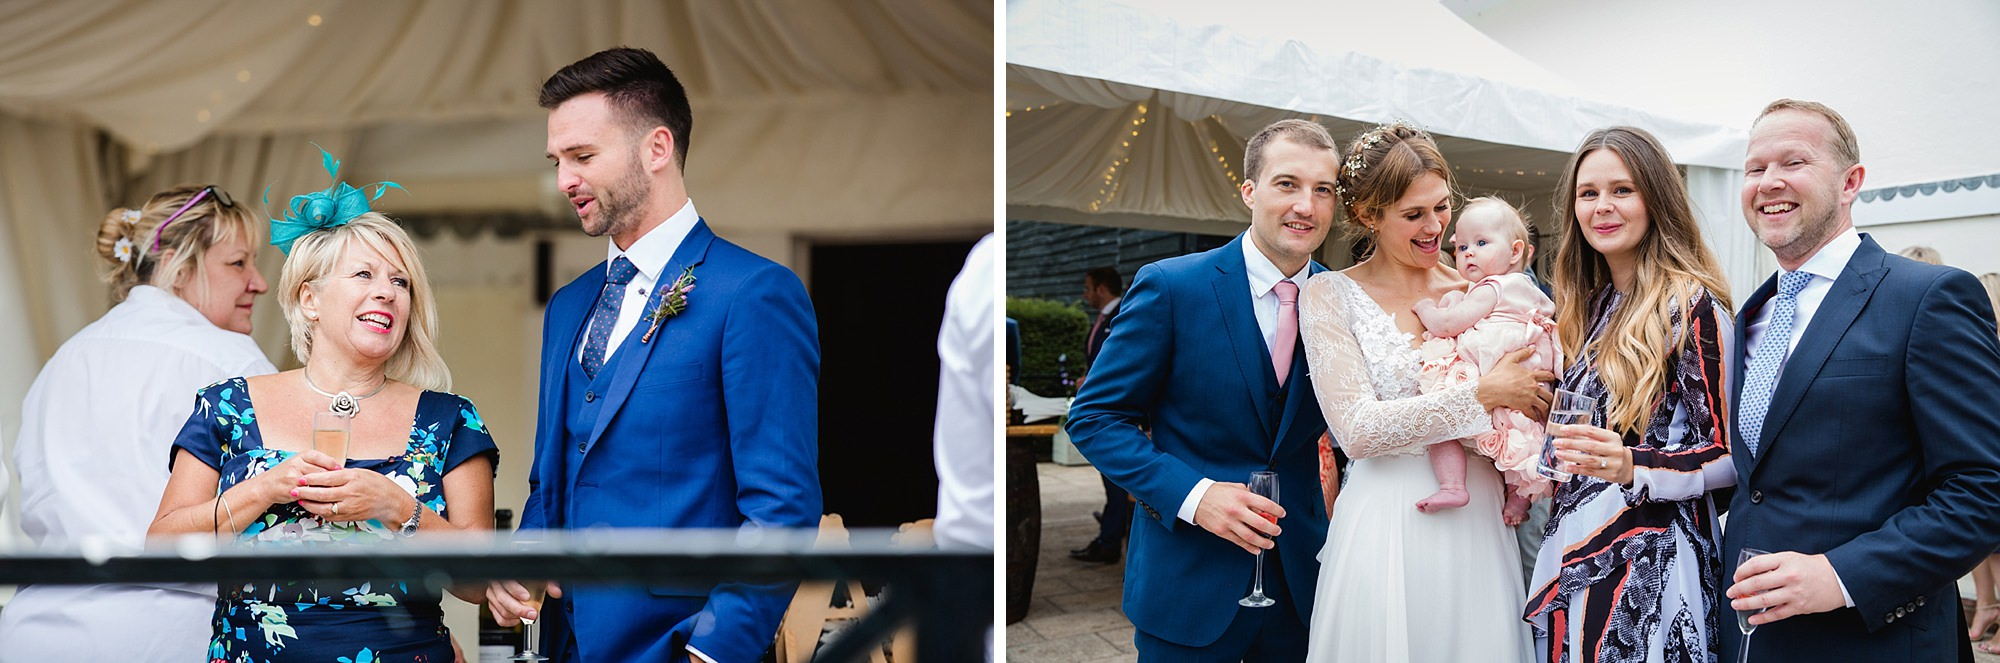 Marks Hall Estate wedding photography wedding guests during reception